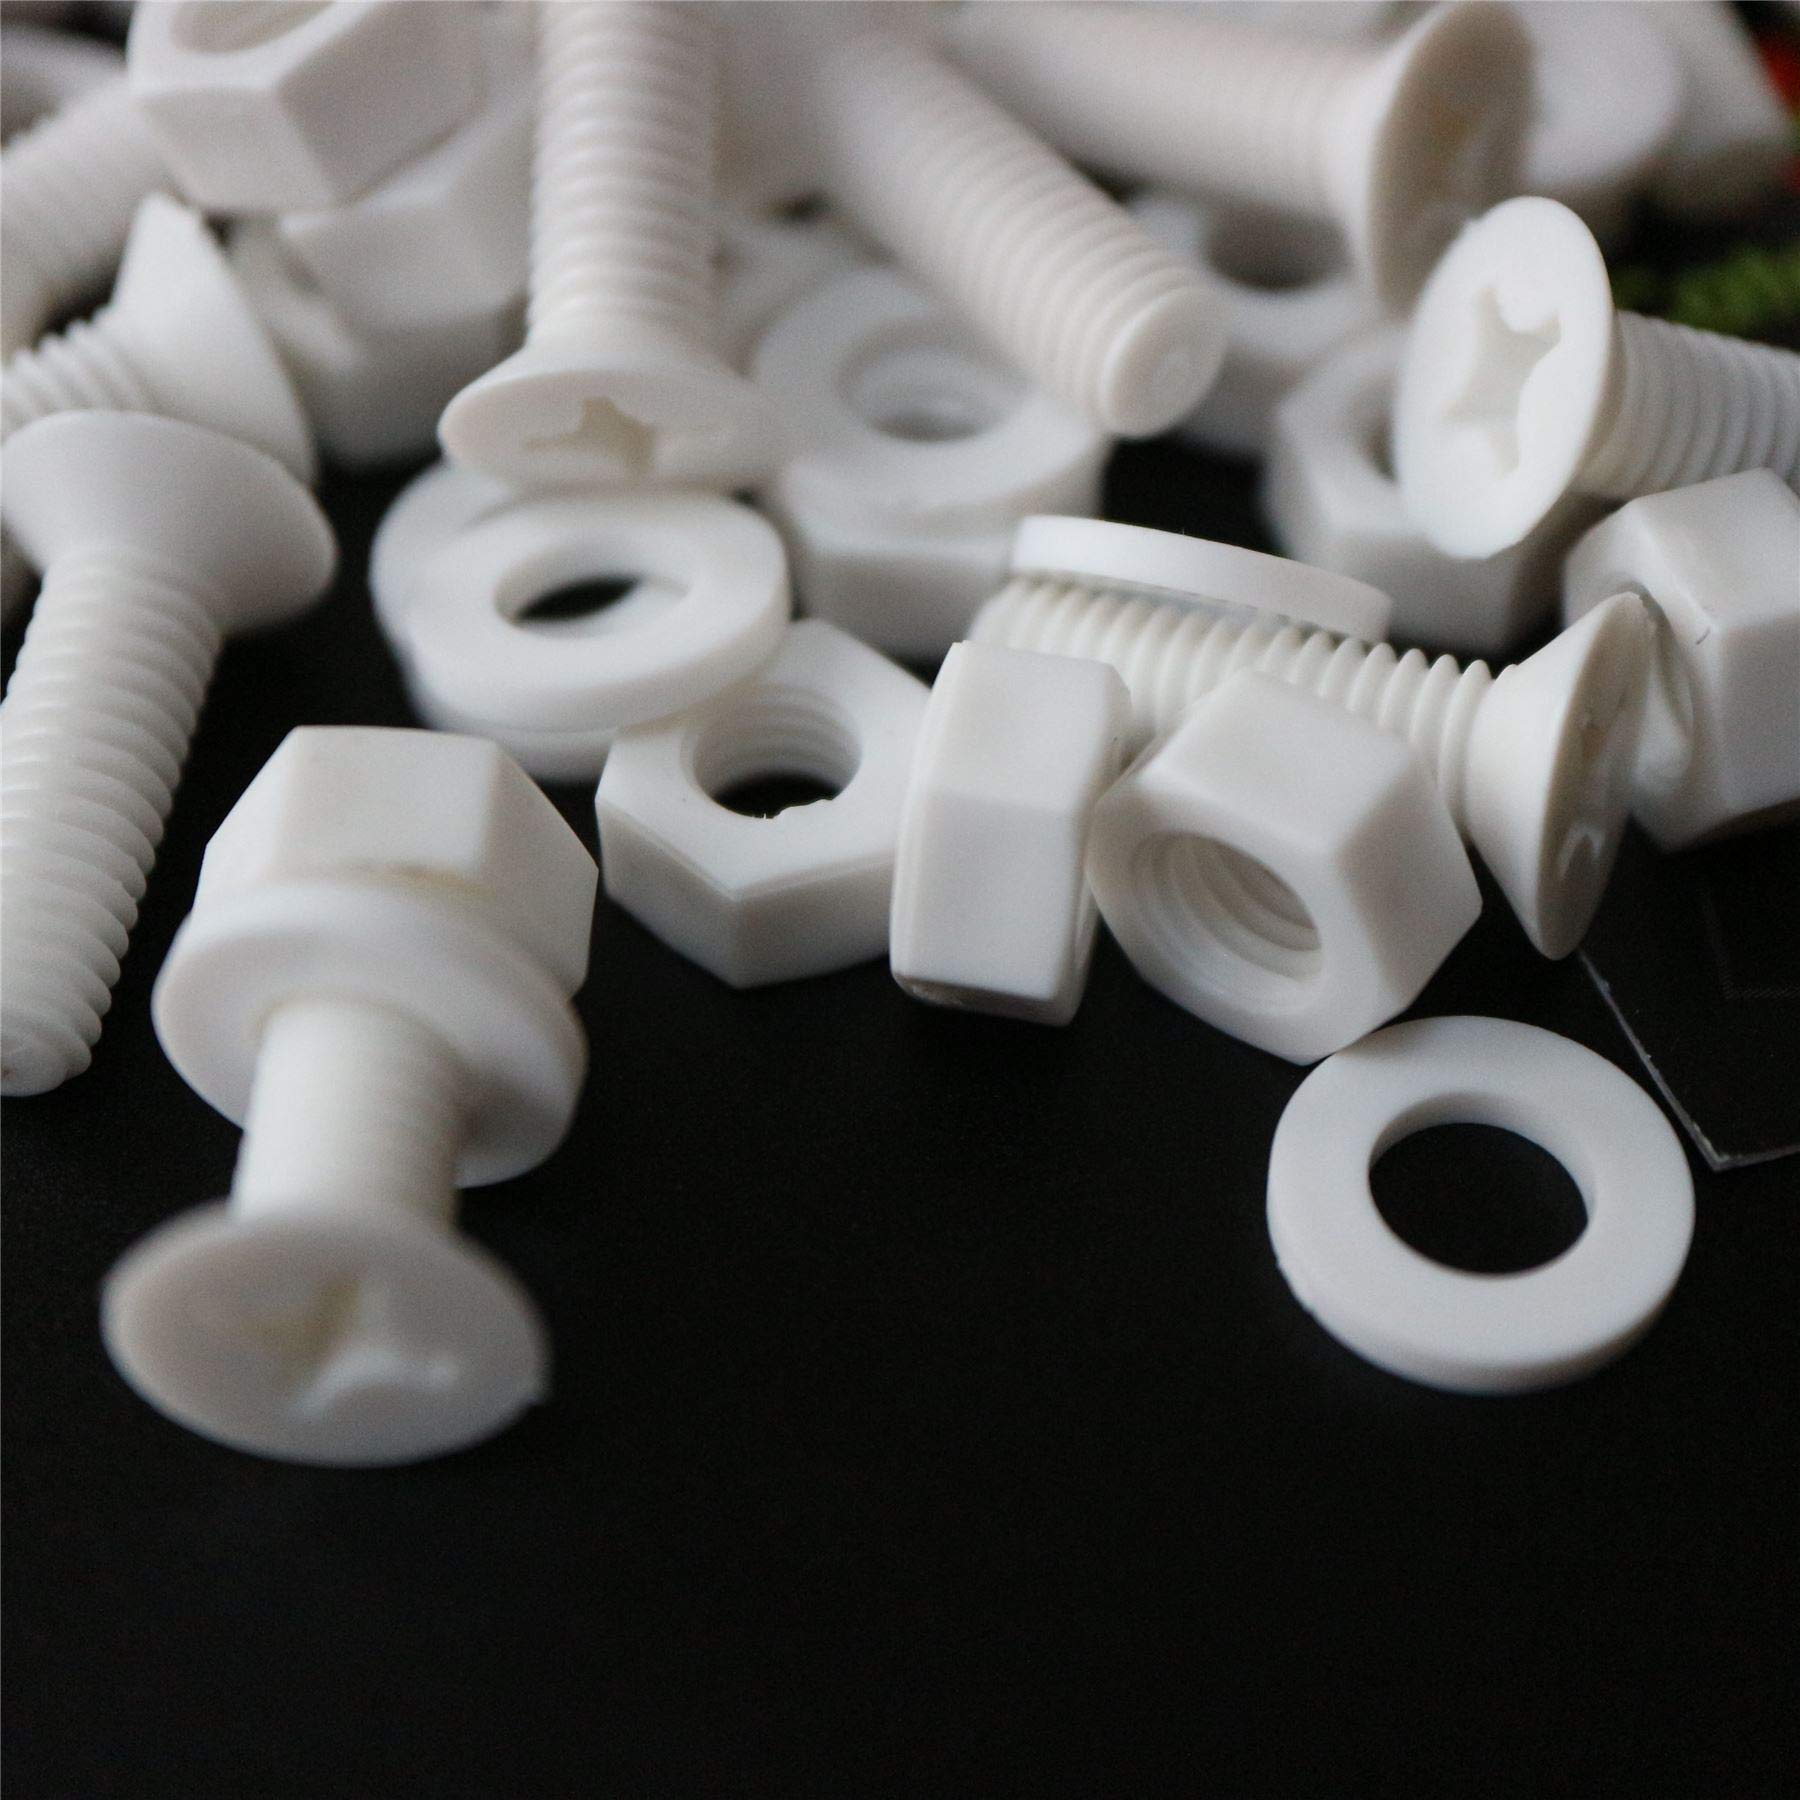 20 x White Countersunk Screws Polypropylene (PP) Plastic Nuts and Bolts, Washers, M6 x 20mm, Acrylic, Water Resistant, Anti-Corrosion, Chemical Resistant, Electrical Insulator, Strong. 15/64 x 25/32''